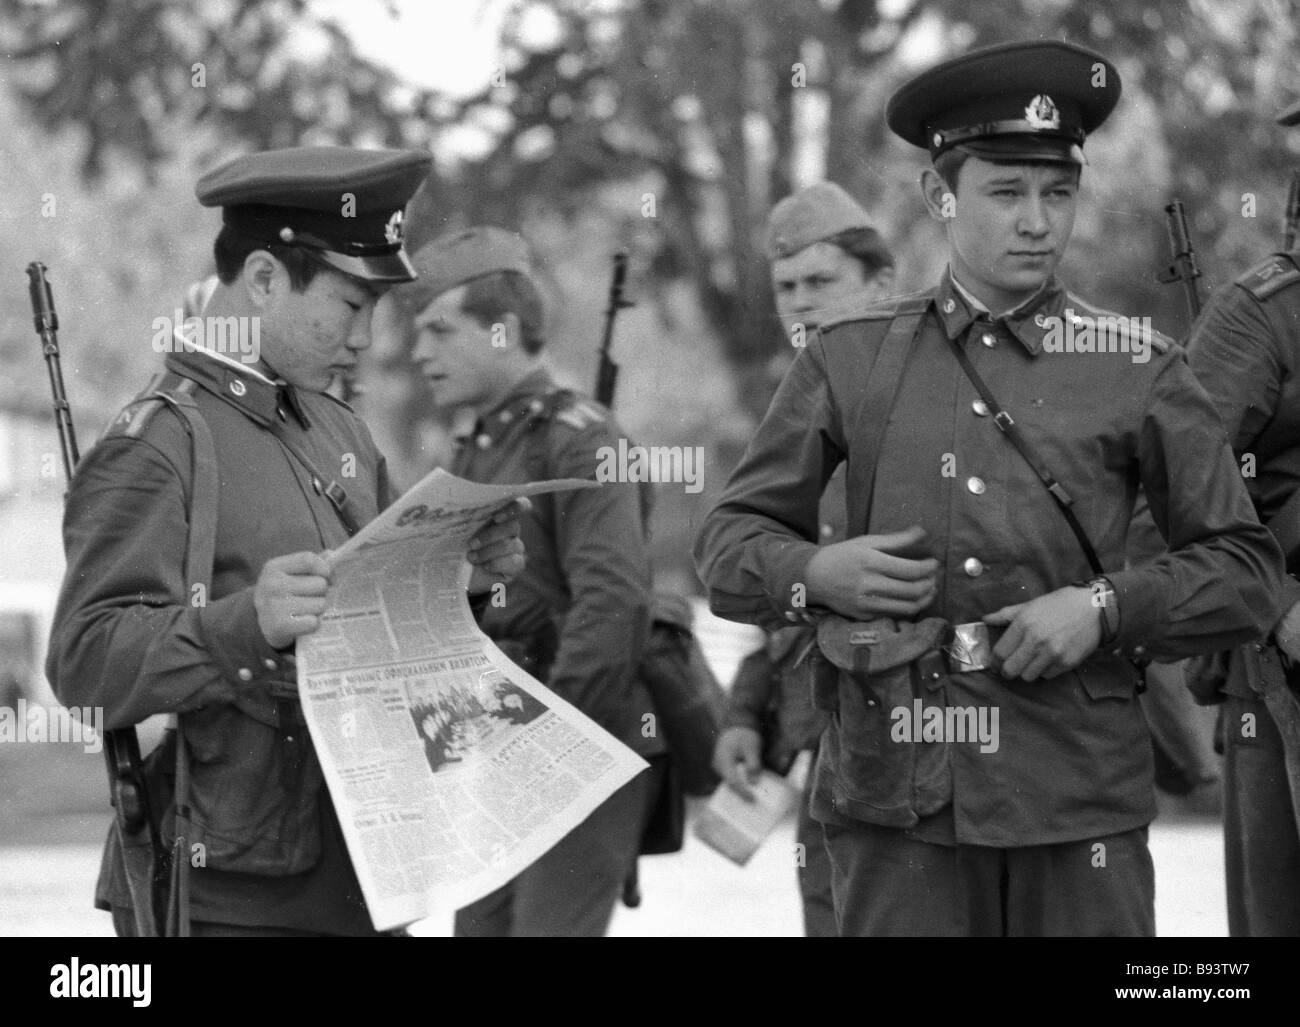 Cadets of the Moscow Mossovet Border Guards Command Higher School of the USSR KGB before the exercises - Stock Image